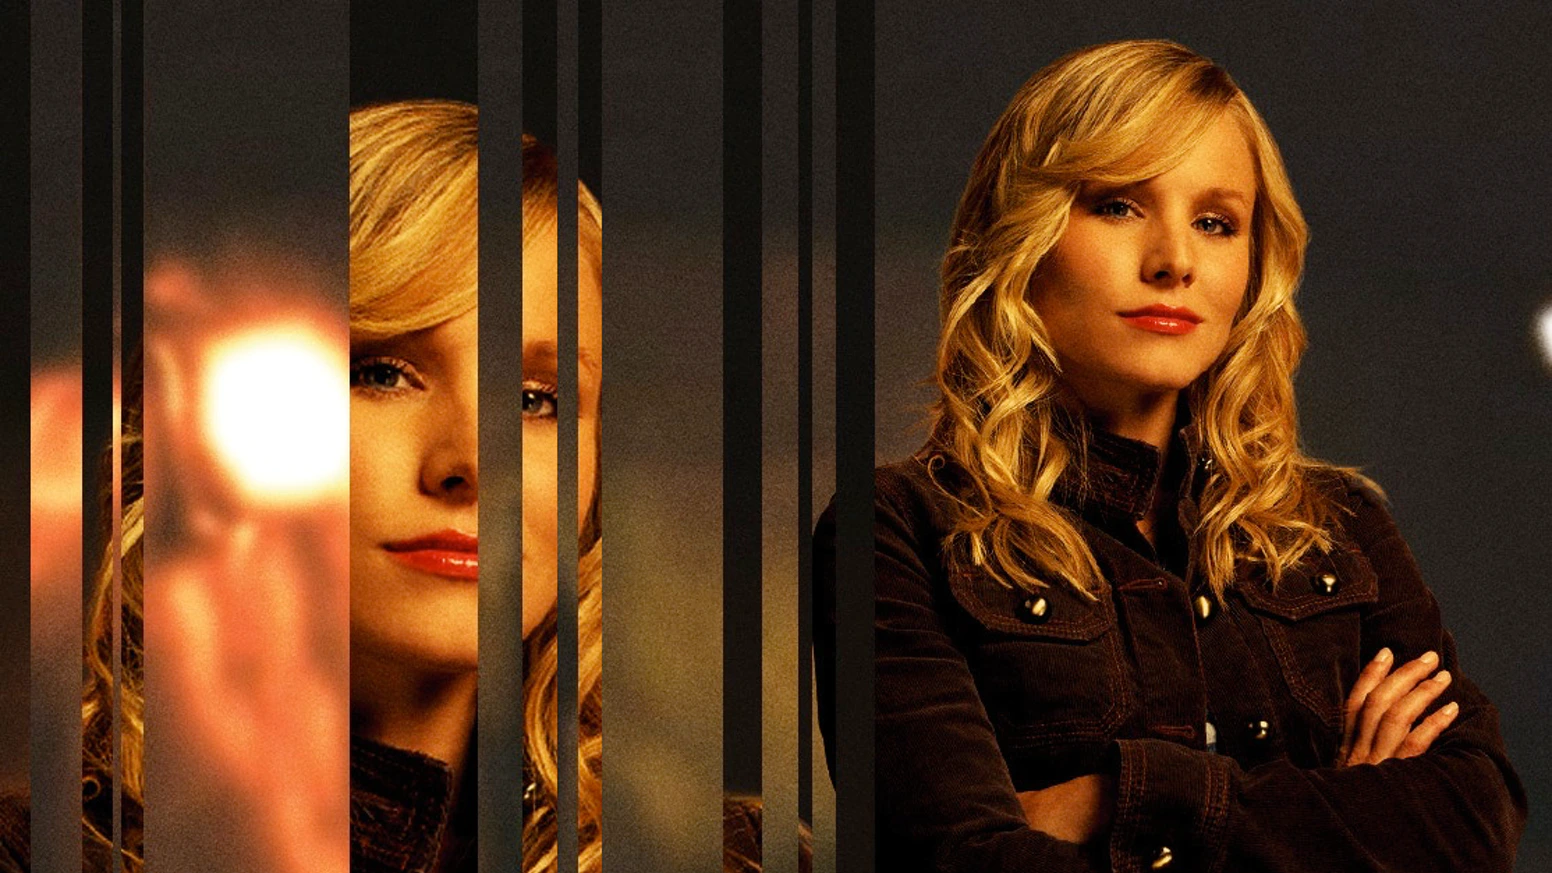 The Veronica Mars Movie Project is one of the most successful kickstarter campaigns.